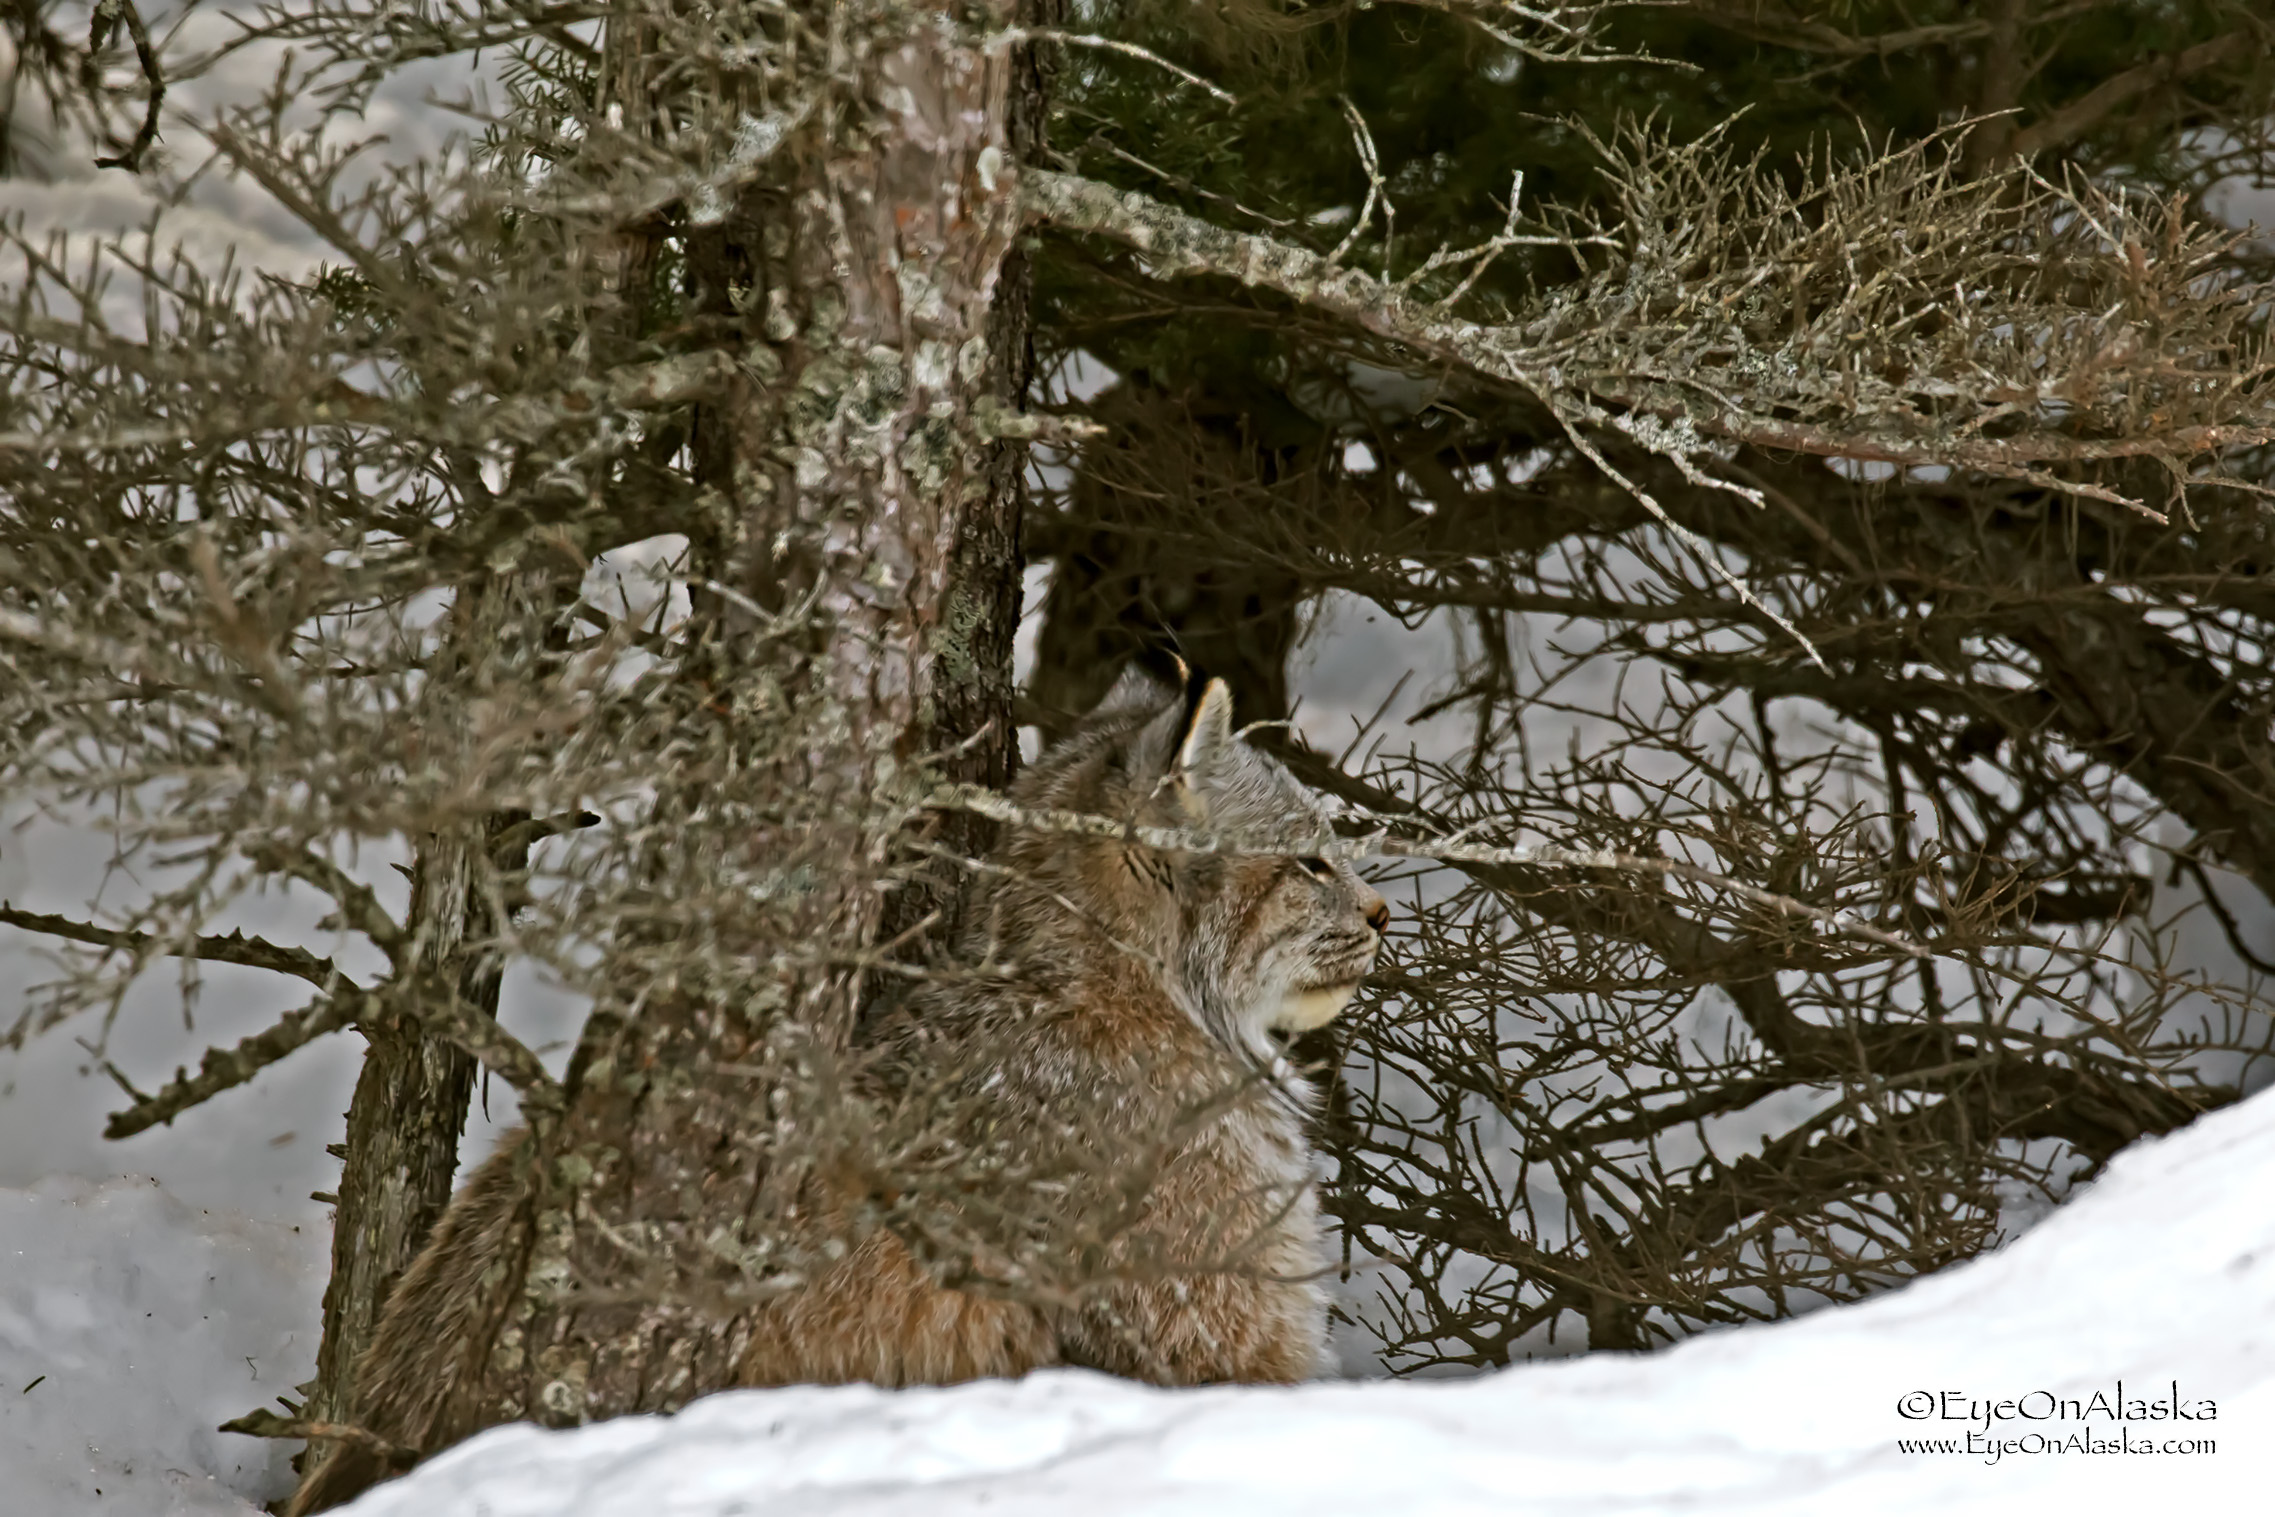 Holy cow, there's a Lynx in the backyard!